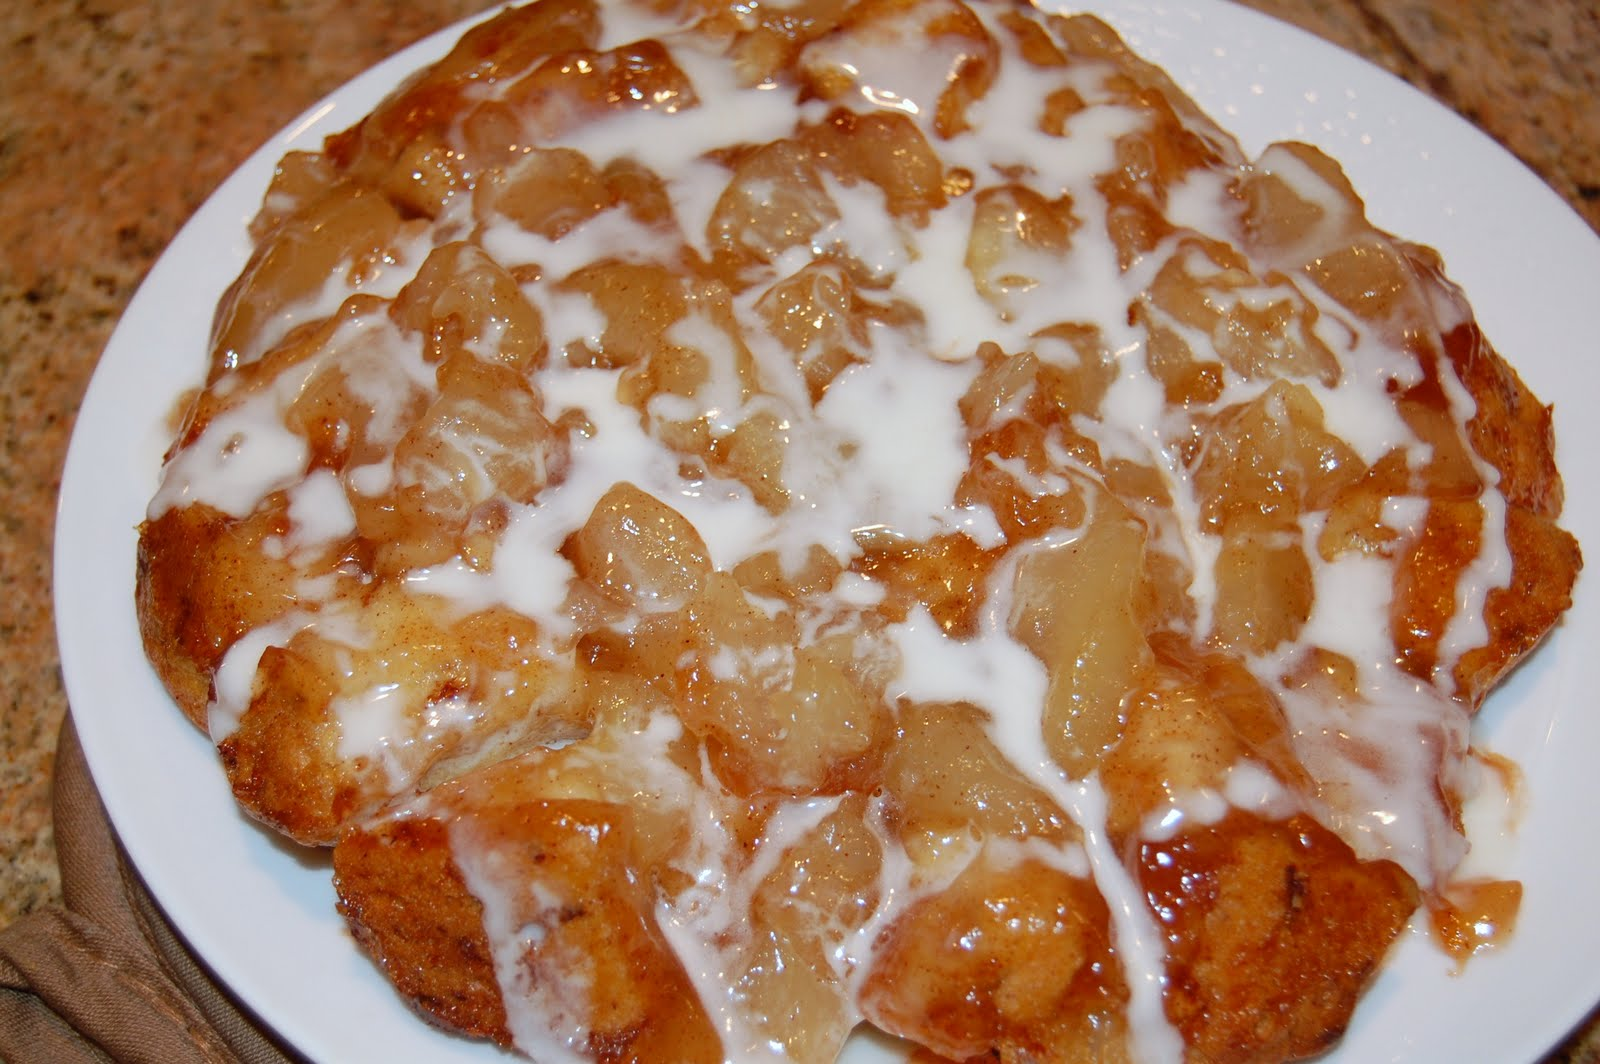 Meals at the Muirs: Upside Down Cinnamon Apple Coffee Cake